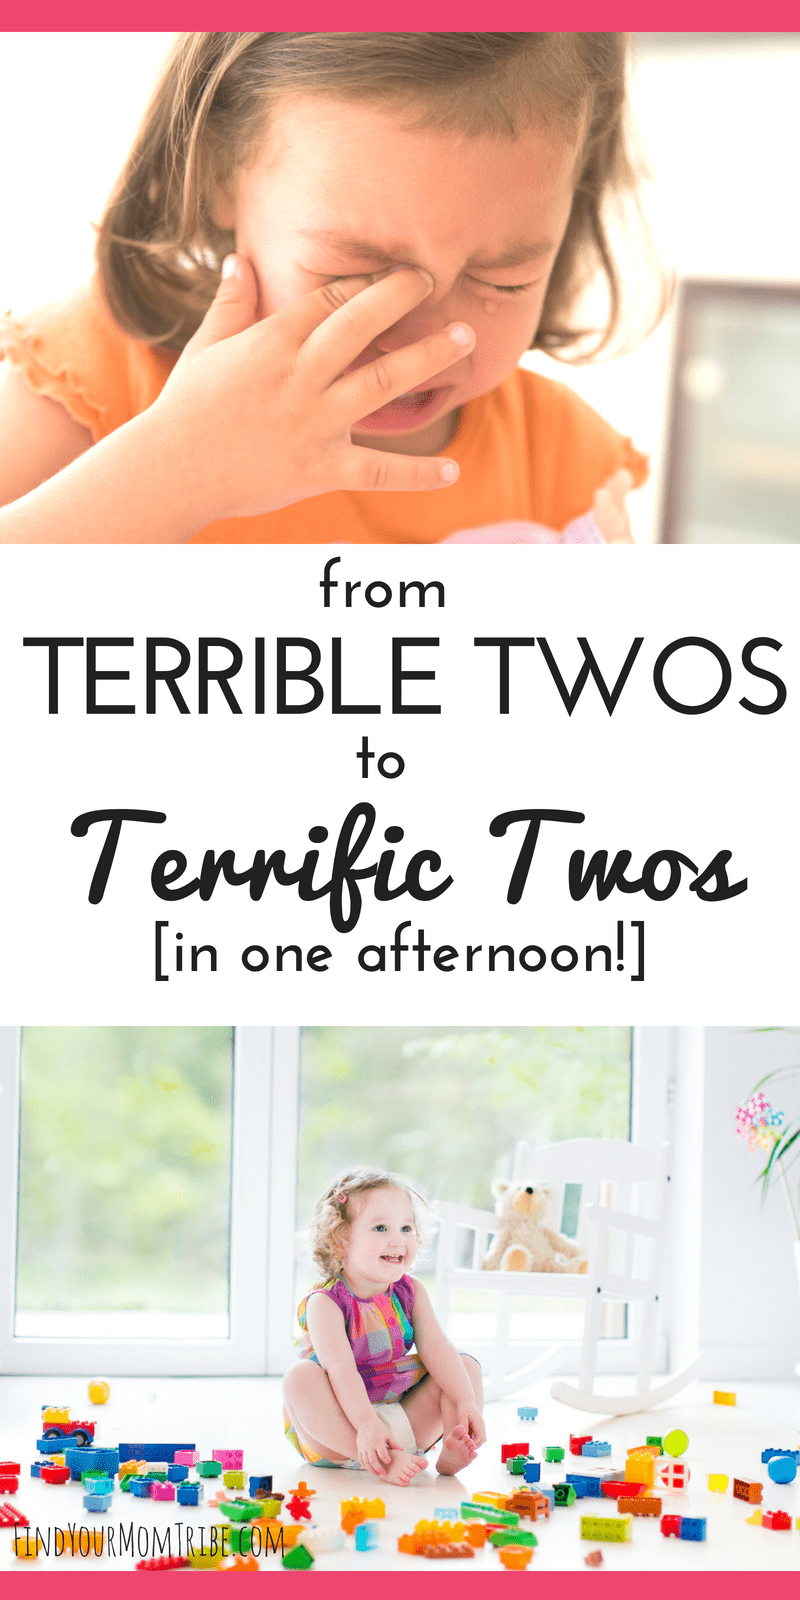 "In just one afternoon you can turn those ""terrible twos"" into terrific twos! Dealing with an opinionated, tantruming two-year-old can be a challenge for moms who are into peaceful parenting. But the answer may be easier than you think. Read the full article to get tips for managing the terrible twos ...and learn how we tamed the tantrums in just one afternoon. peaceful parenting 